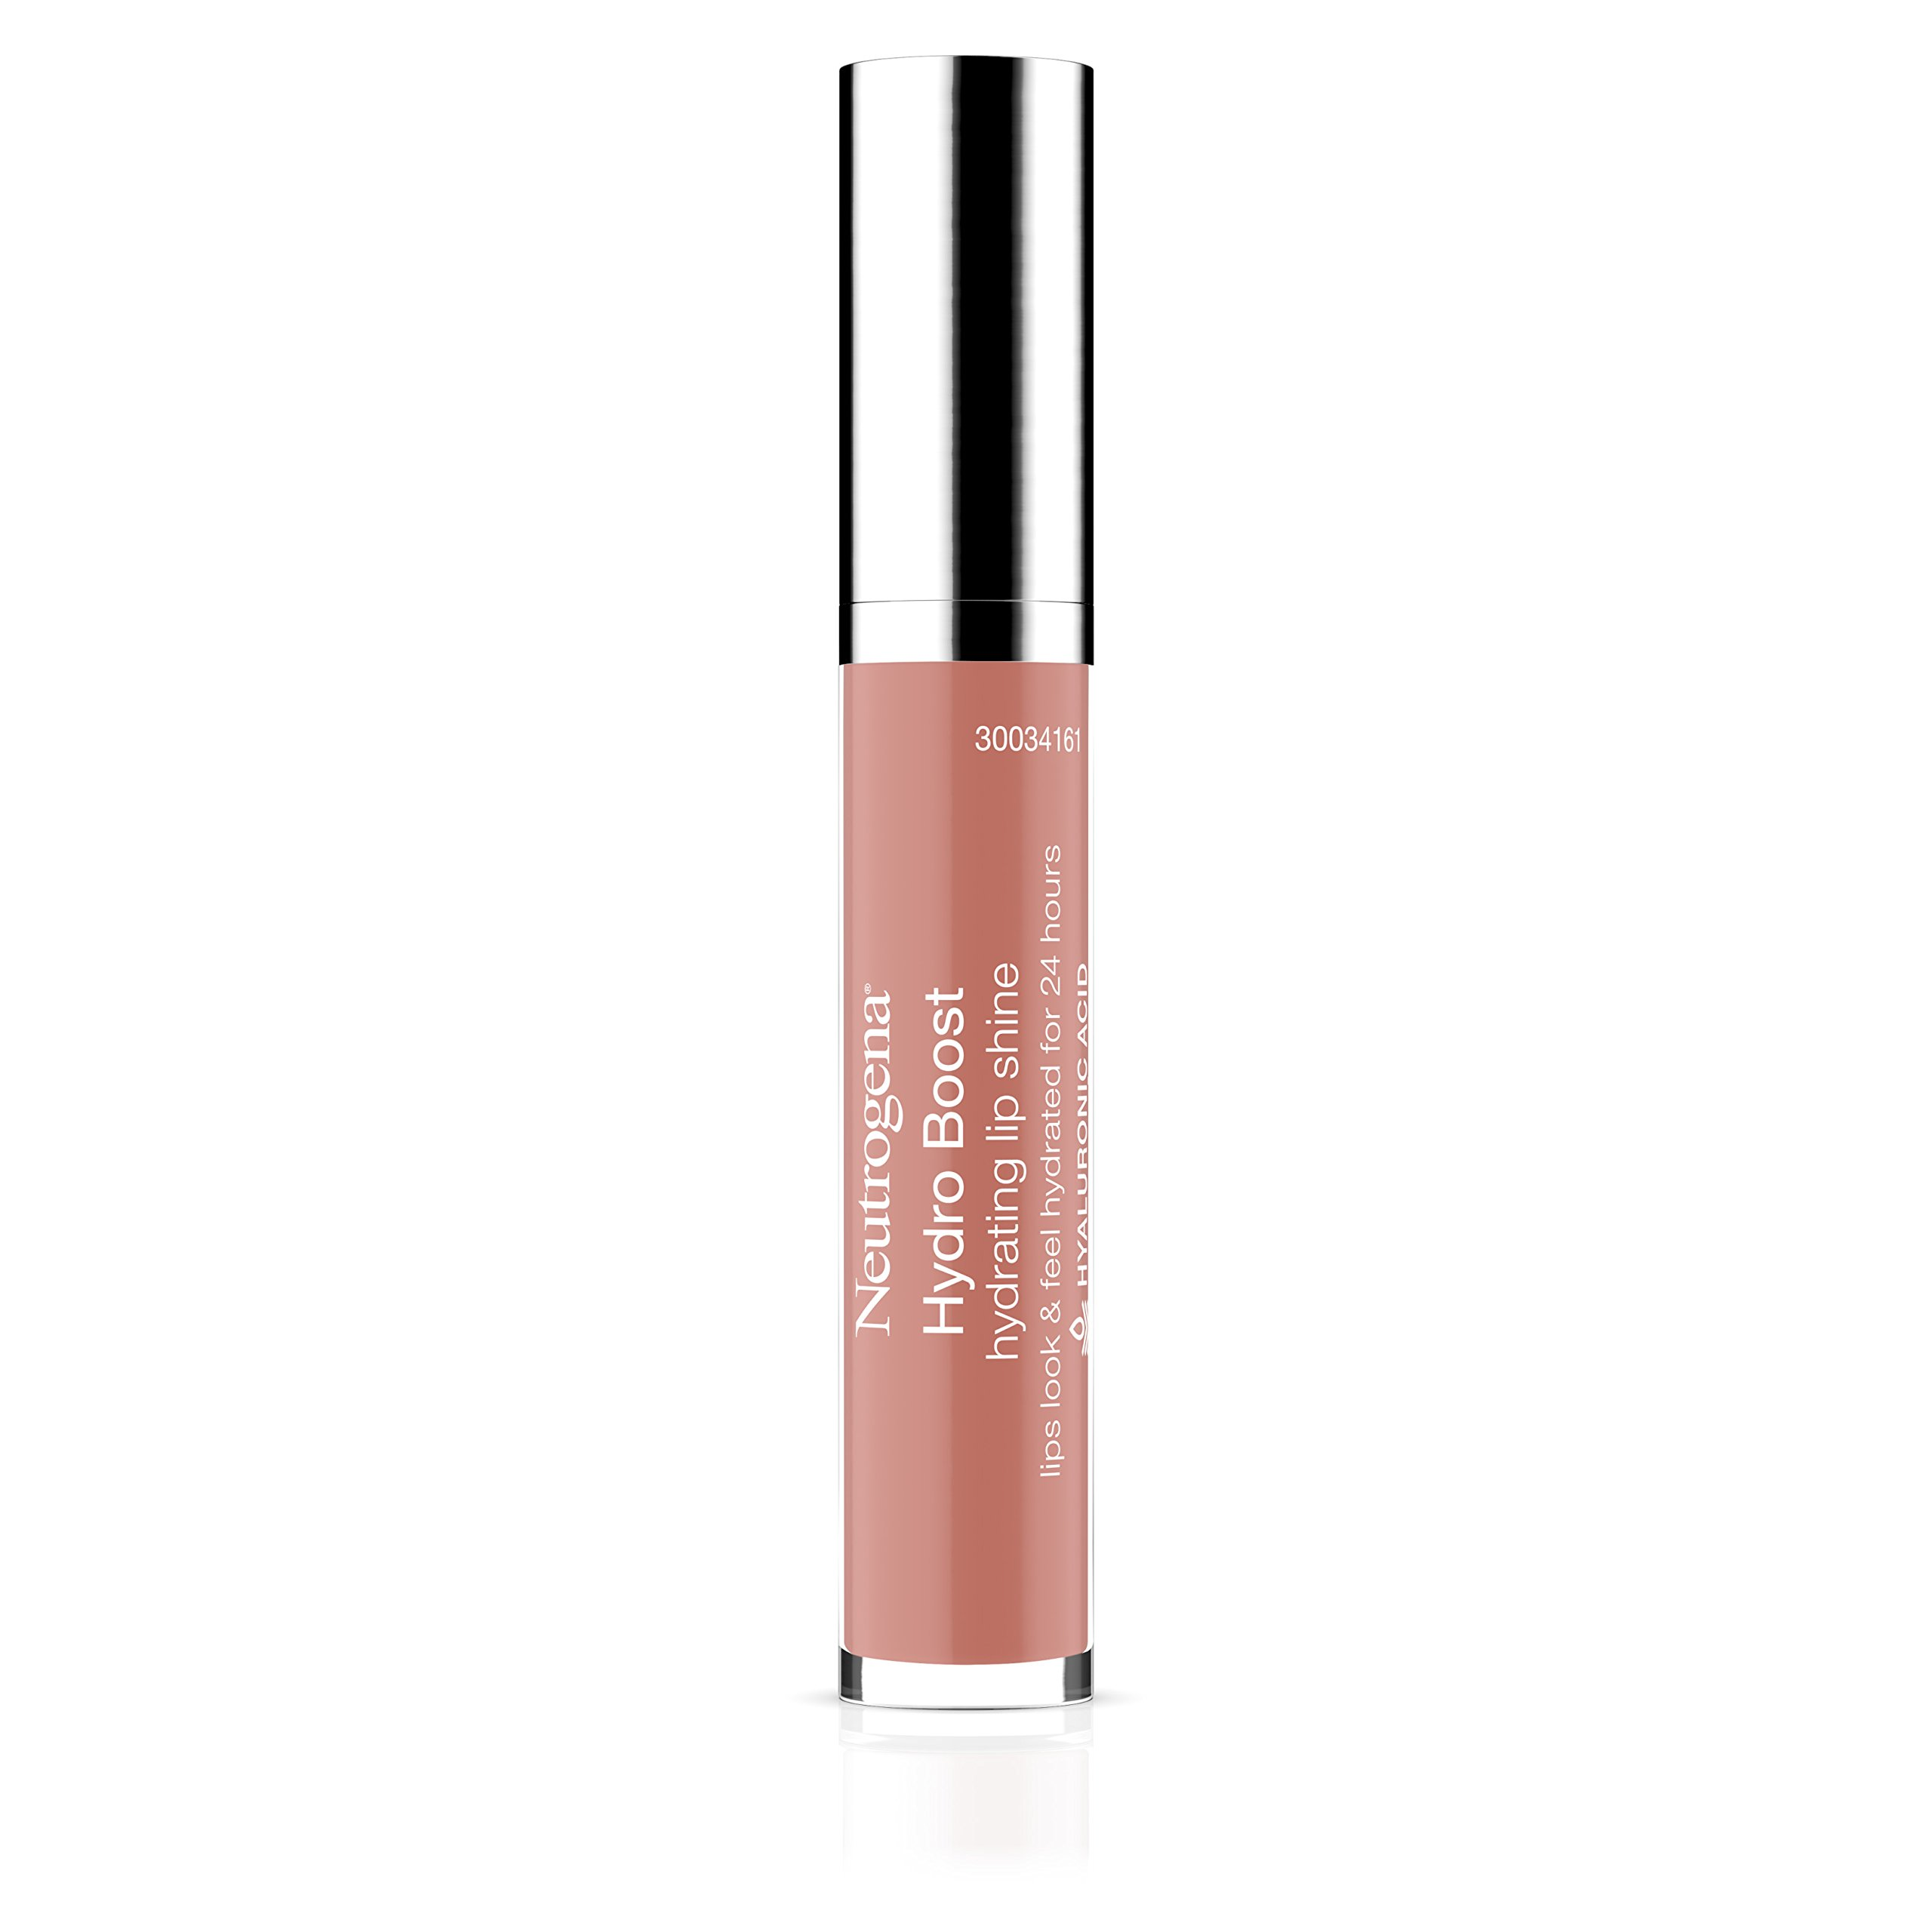 Neutrogena Hydro Boost Hydrating Lip Shine, 20 Berry Brown Color 0.10 Oz